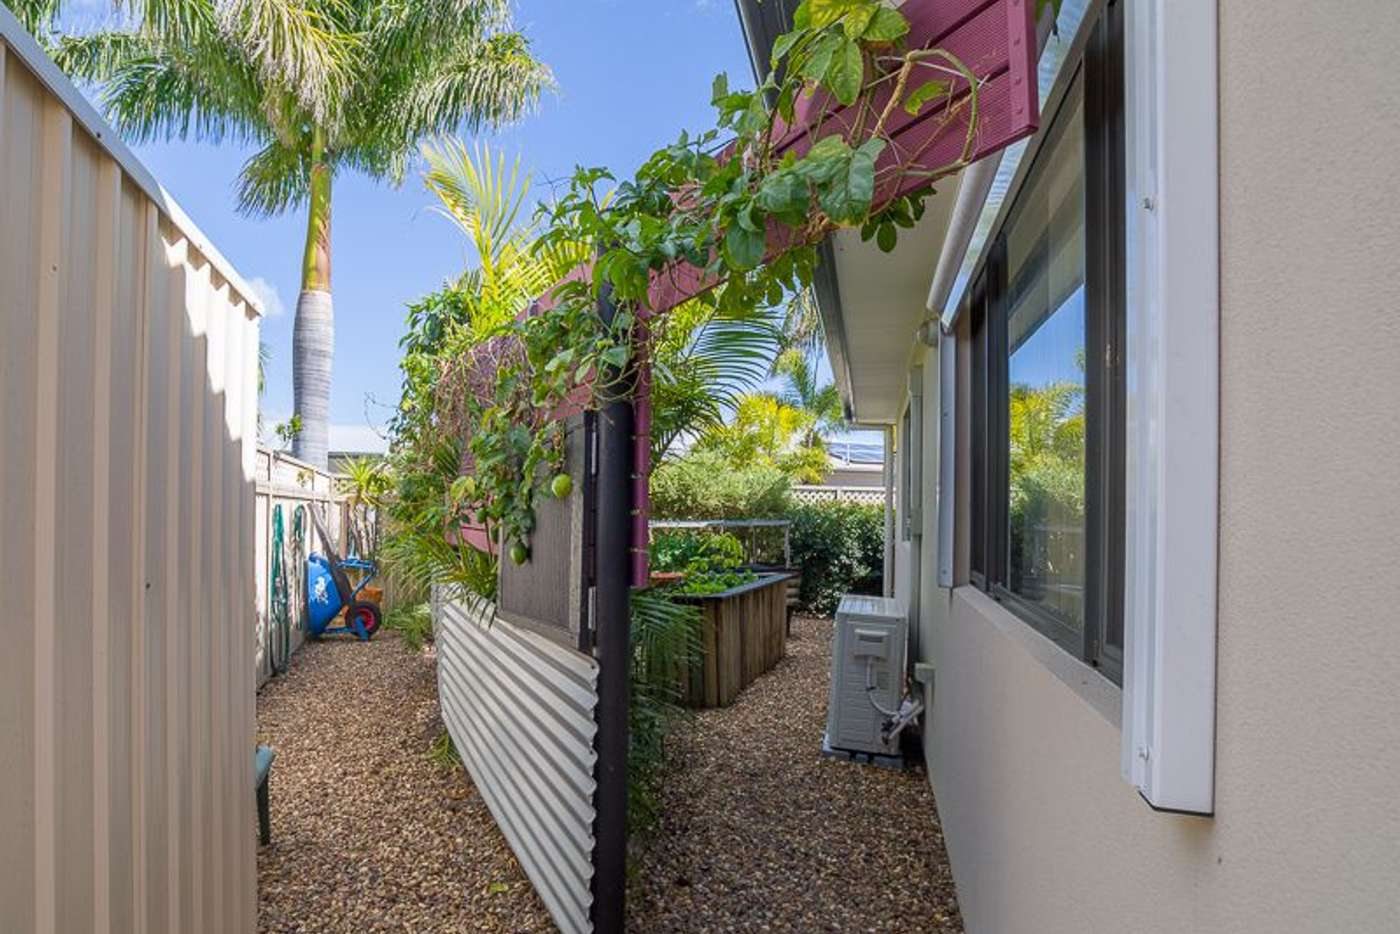 Sixth view of Homely house listing, 205 / 25-67 BURRUM HEADS ROAD, Eli Waters QLD 4655